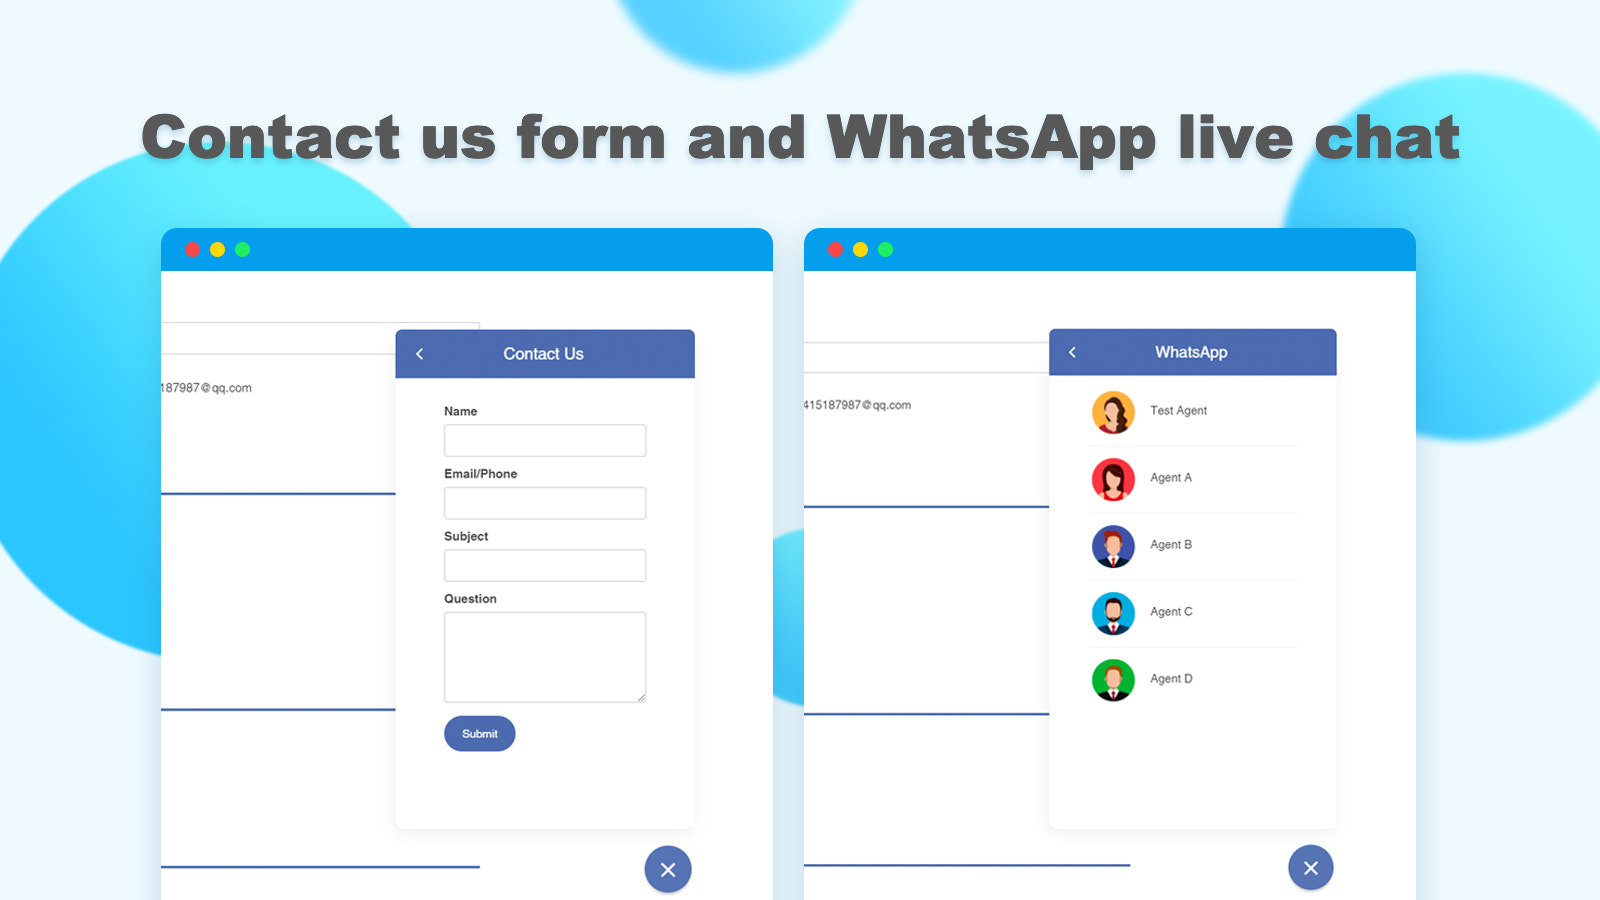 Contact us form and WhatsApp live chat